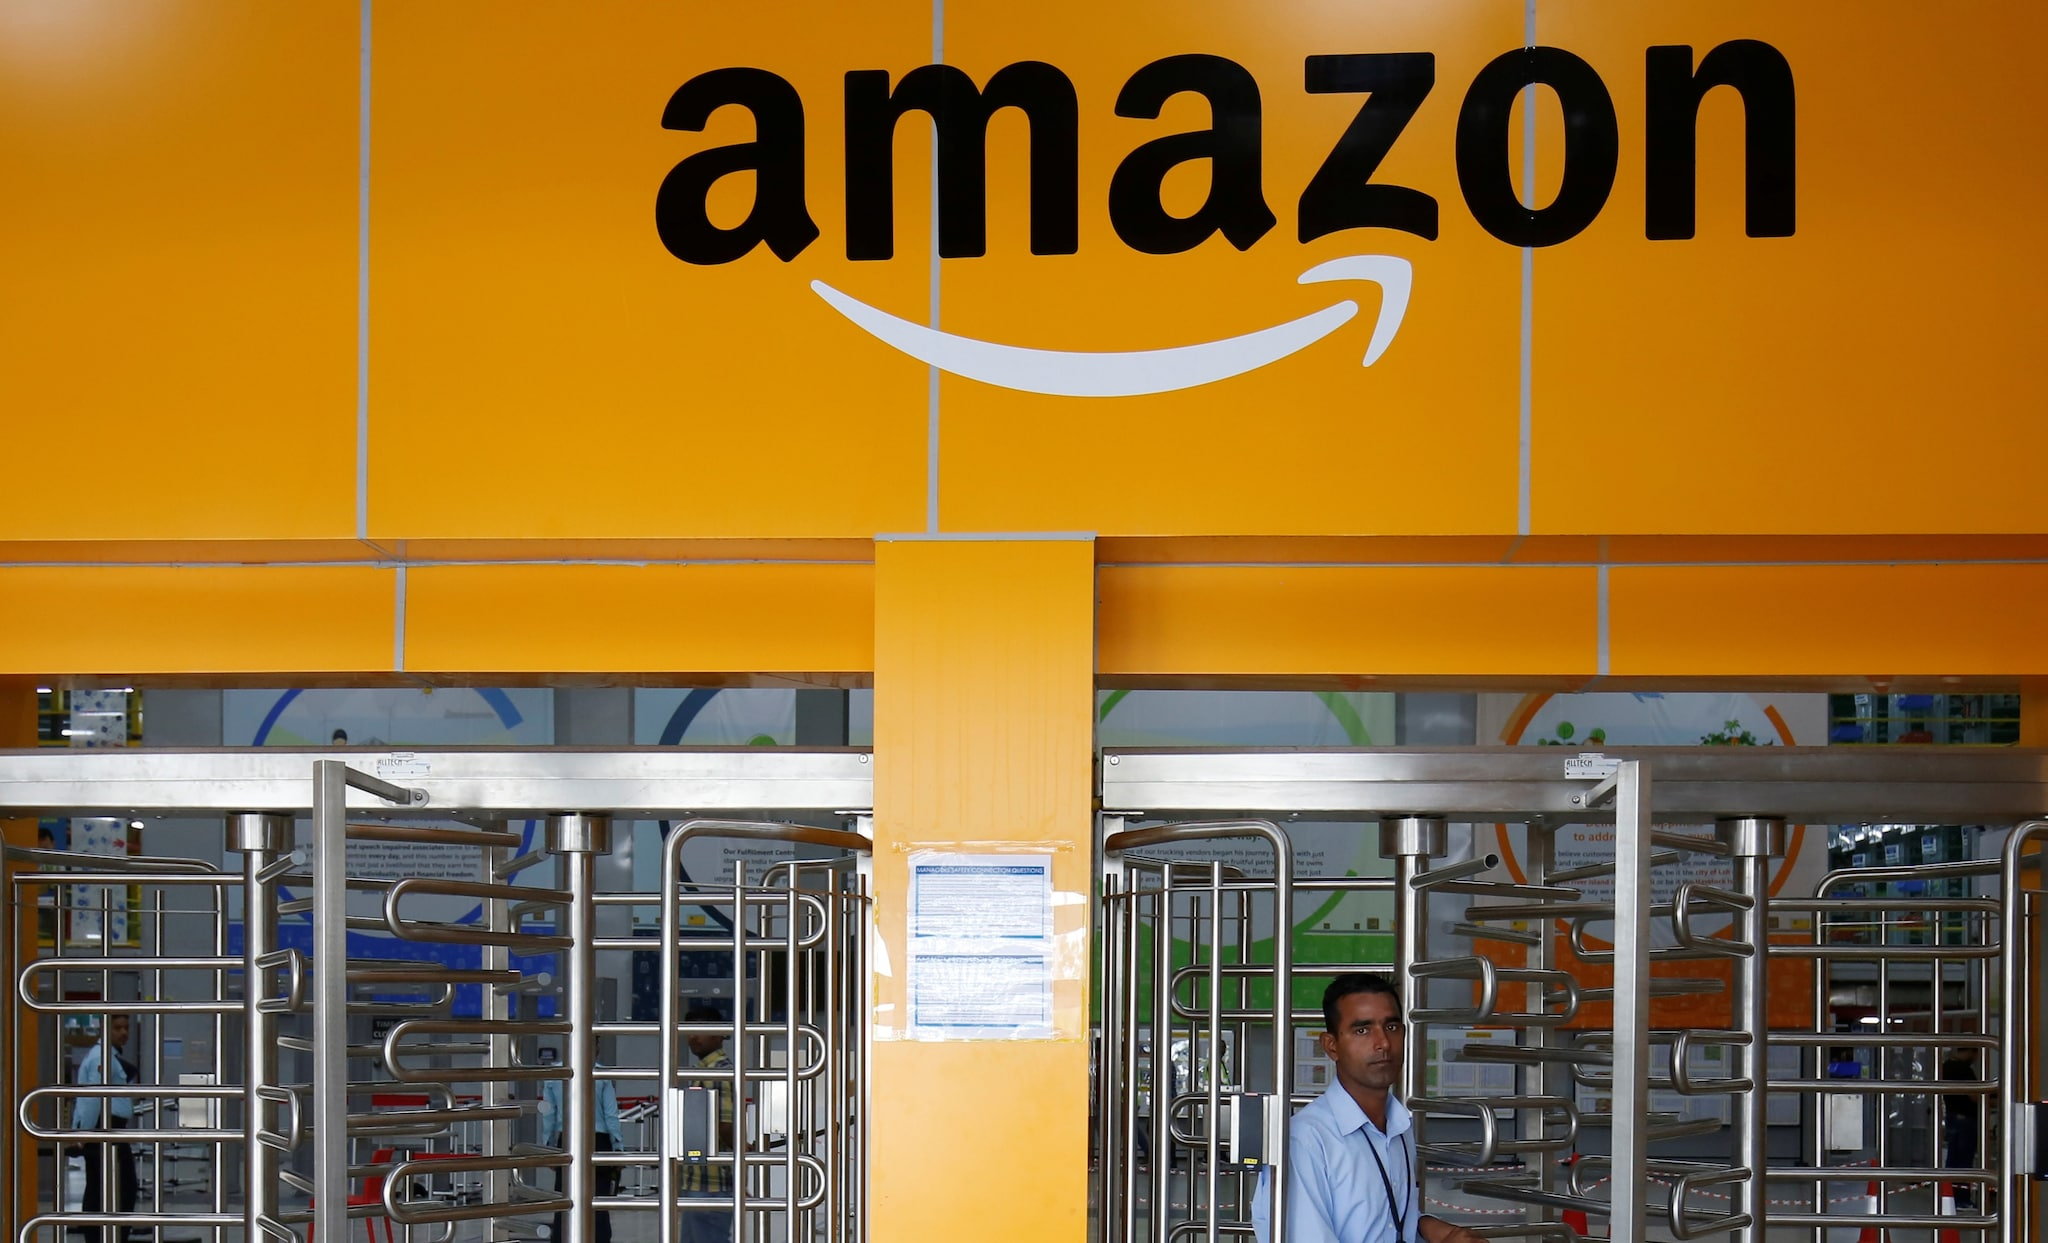 #1: Amazon is the number one employer brand, according to the Randstad Employer Brand Research (REBR) 2019, released on Monday. The firm scored high on financial health, utilisation of latest technologies and a strong reputation. (Image: Reuters)